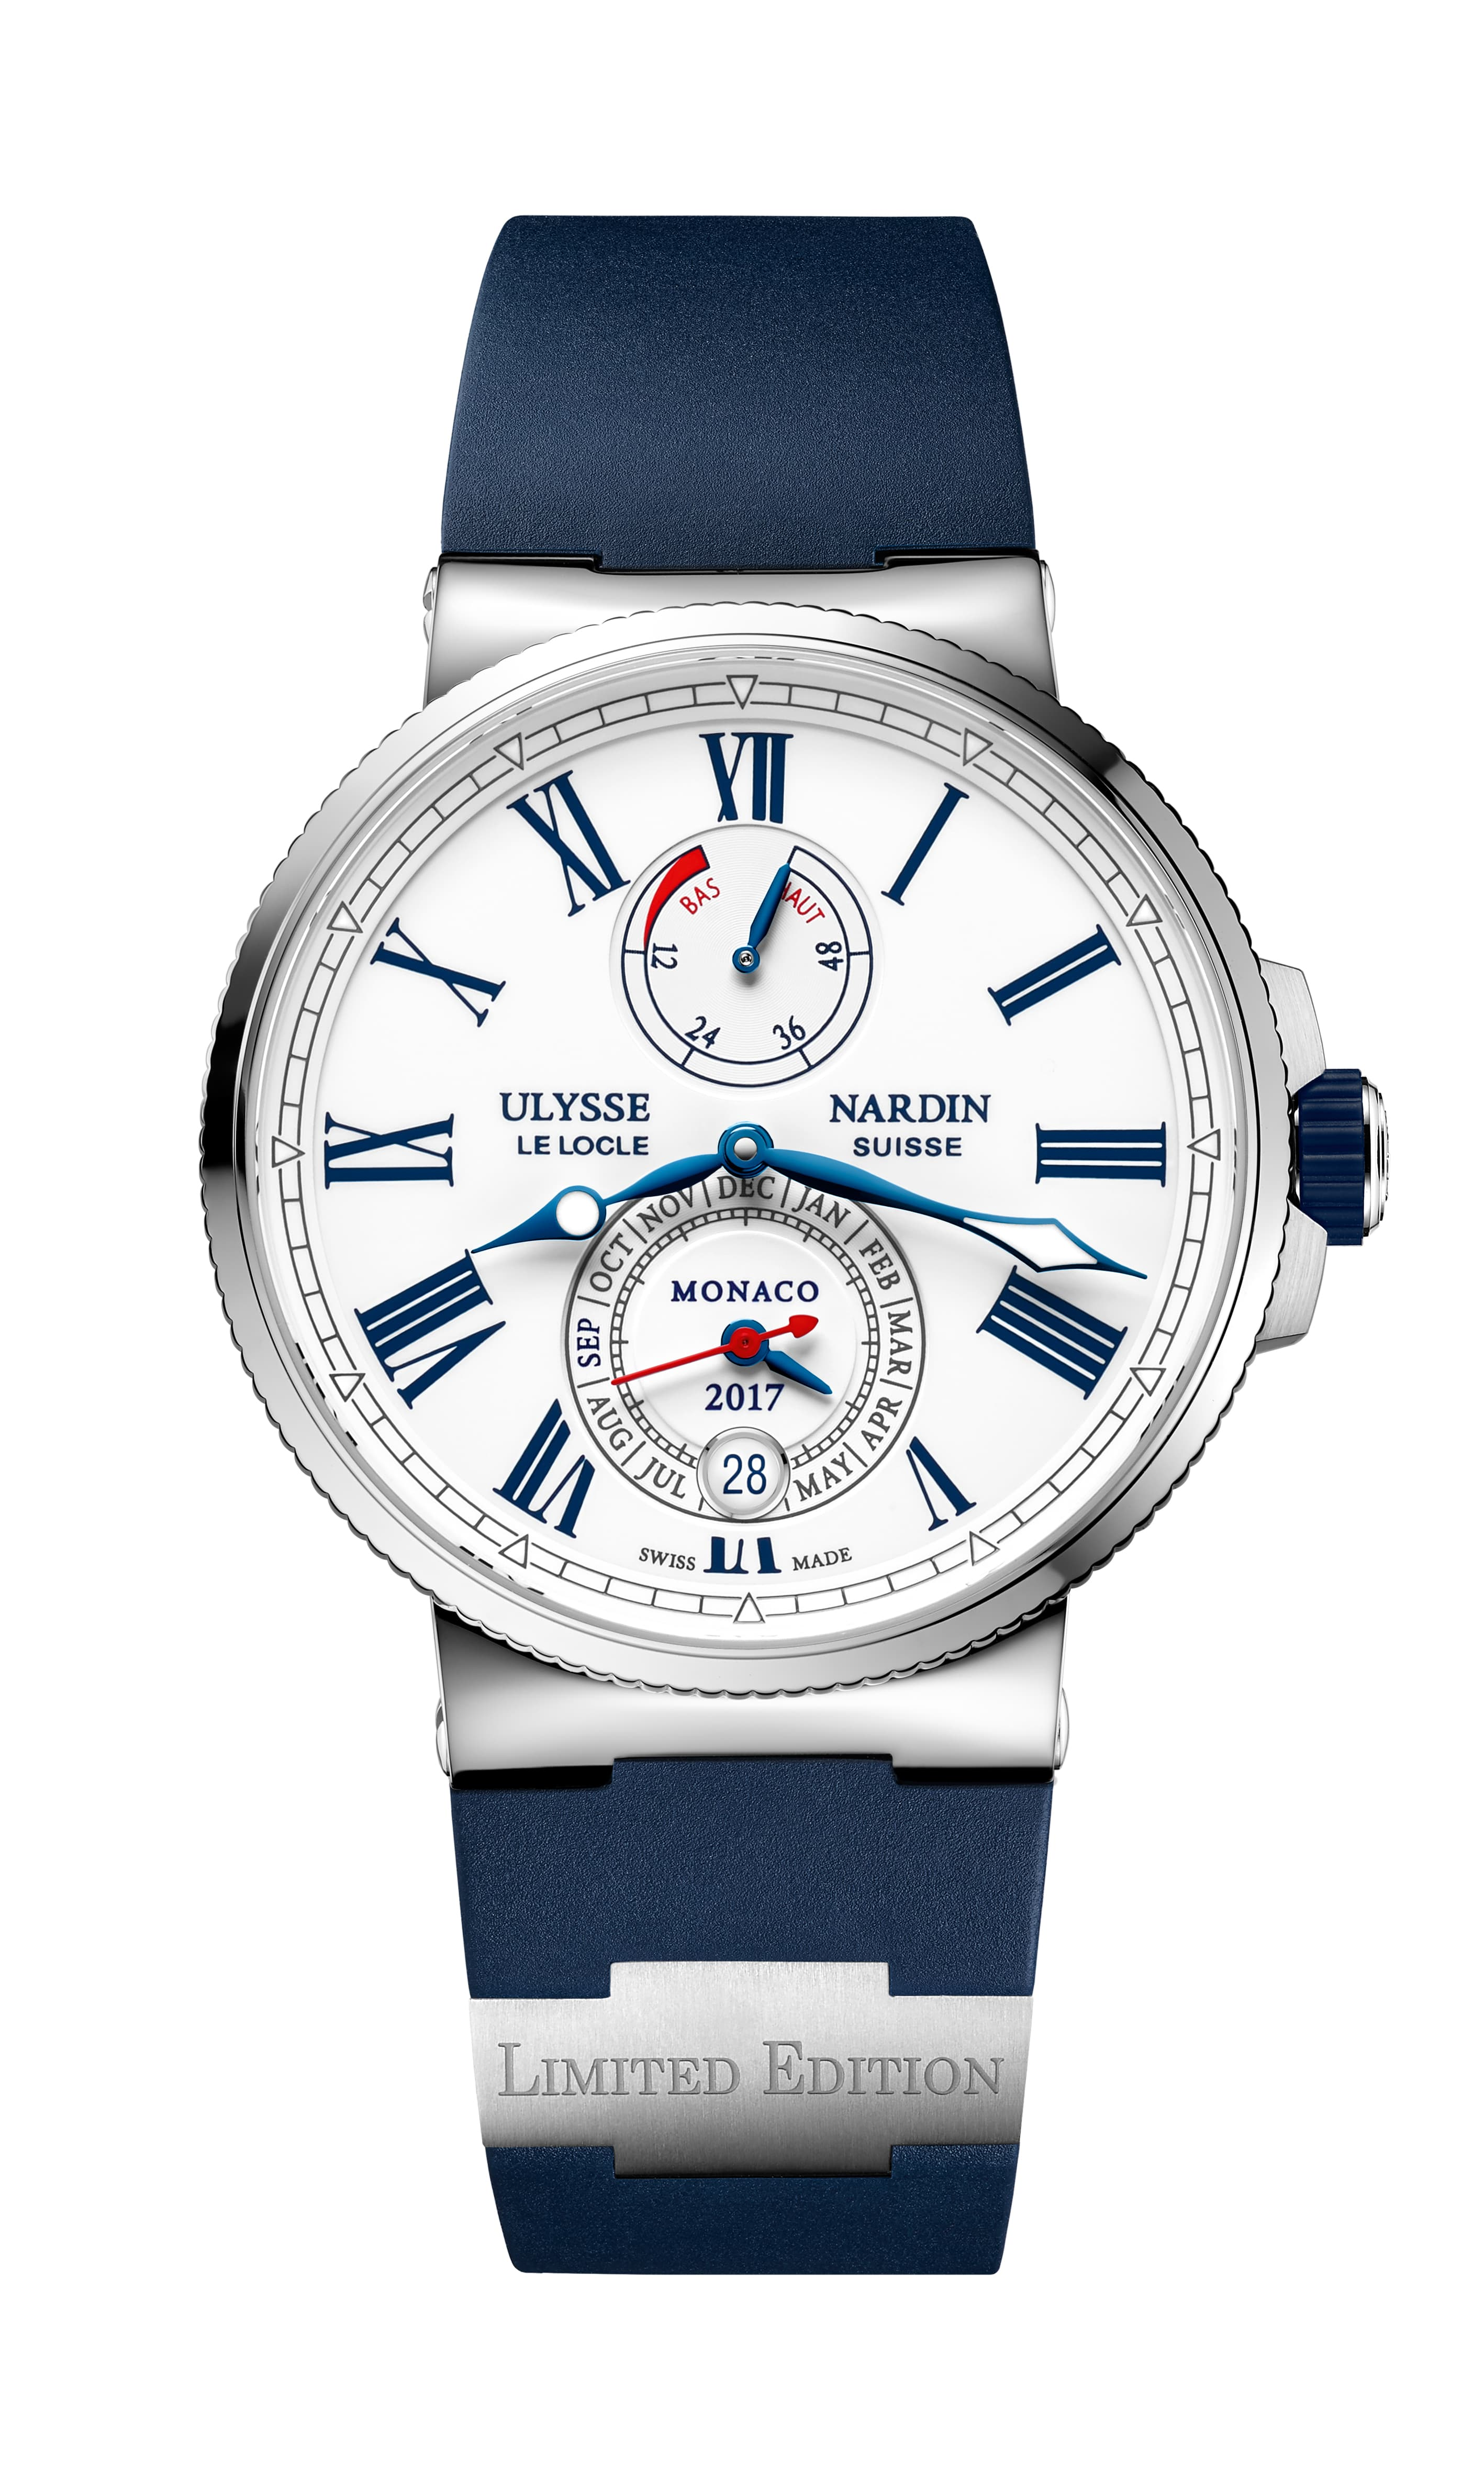 The Ulysse Nardin Marine Chronometer